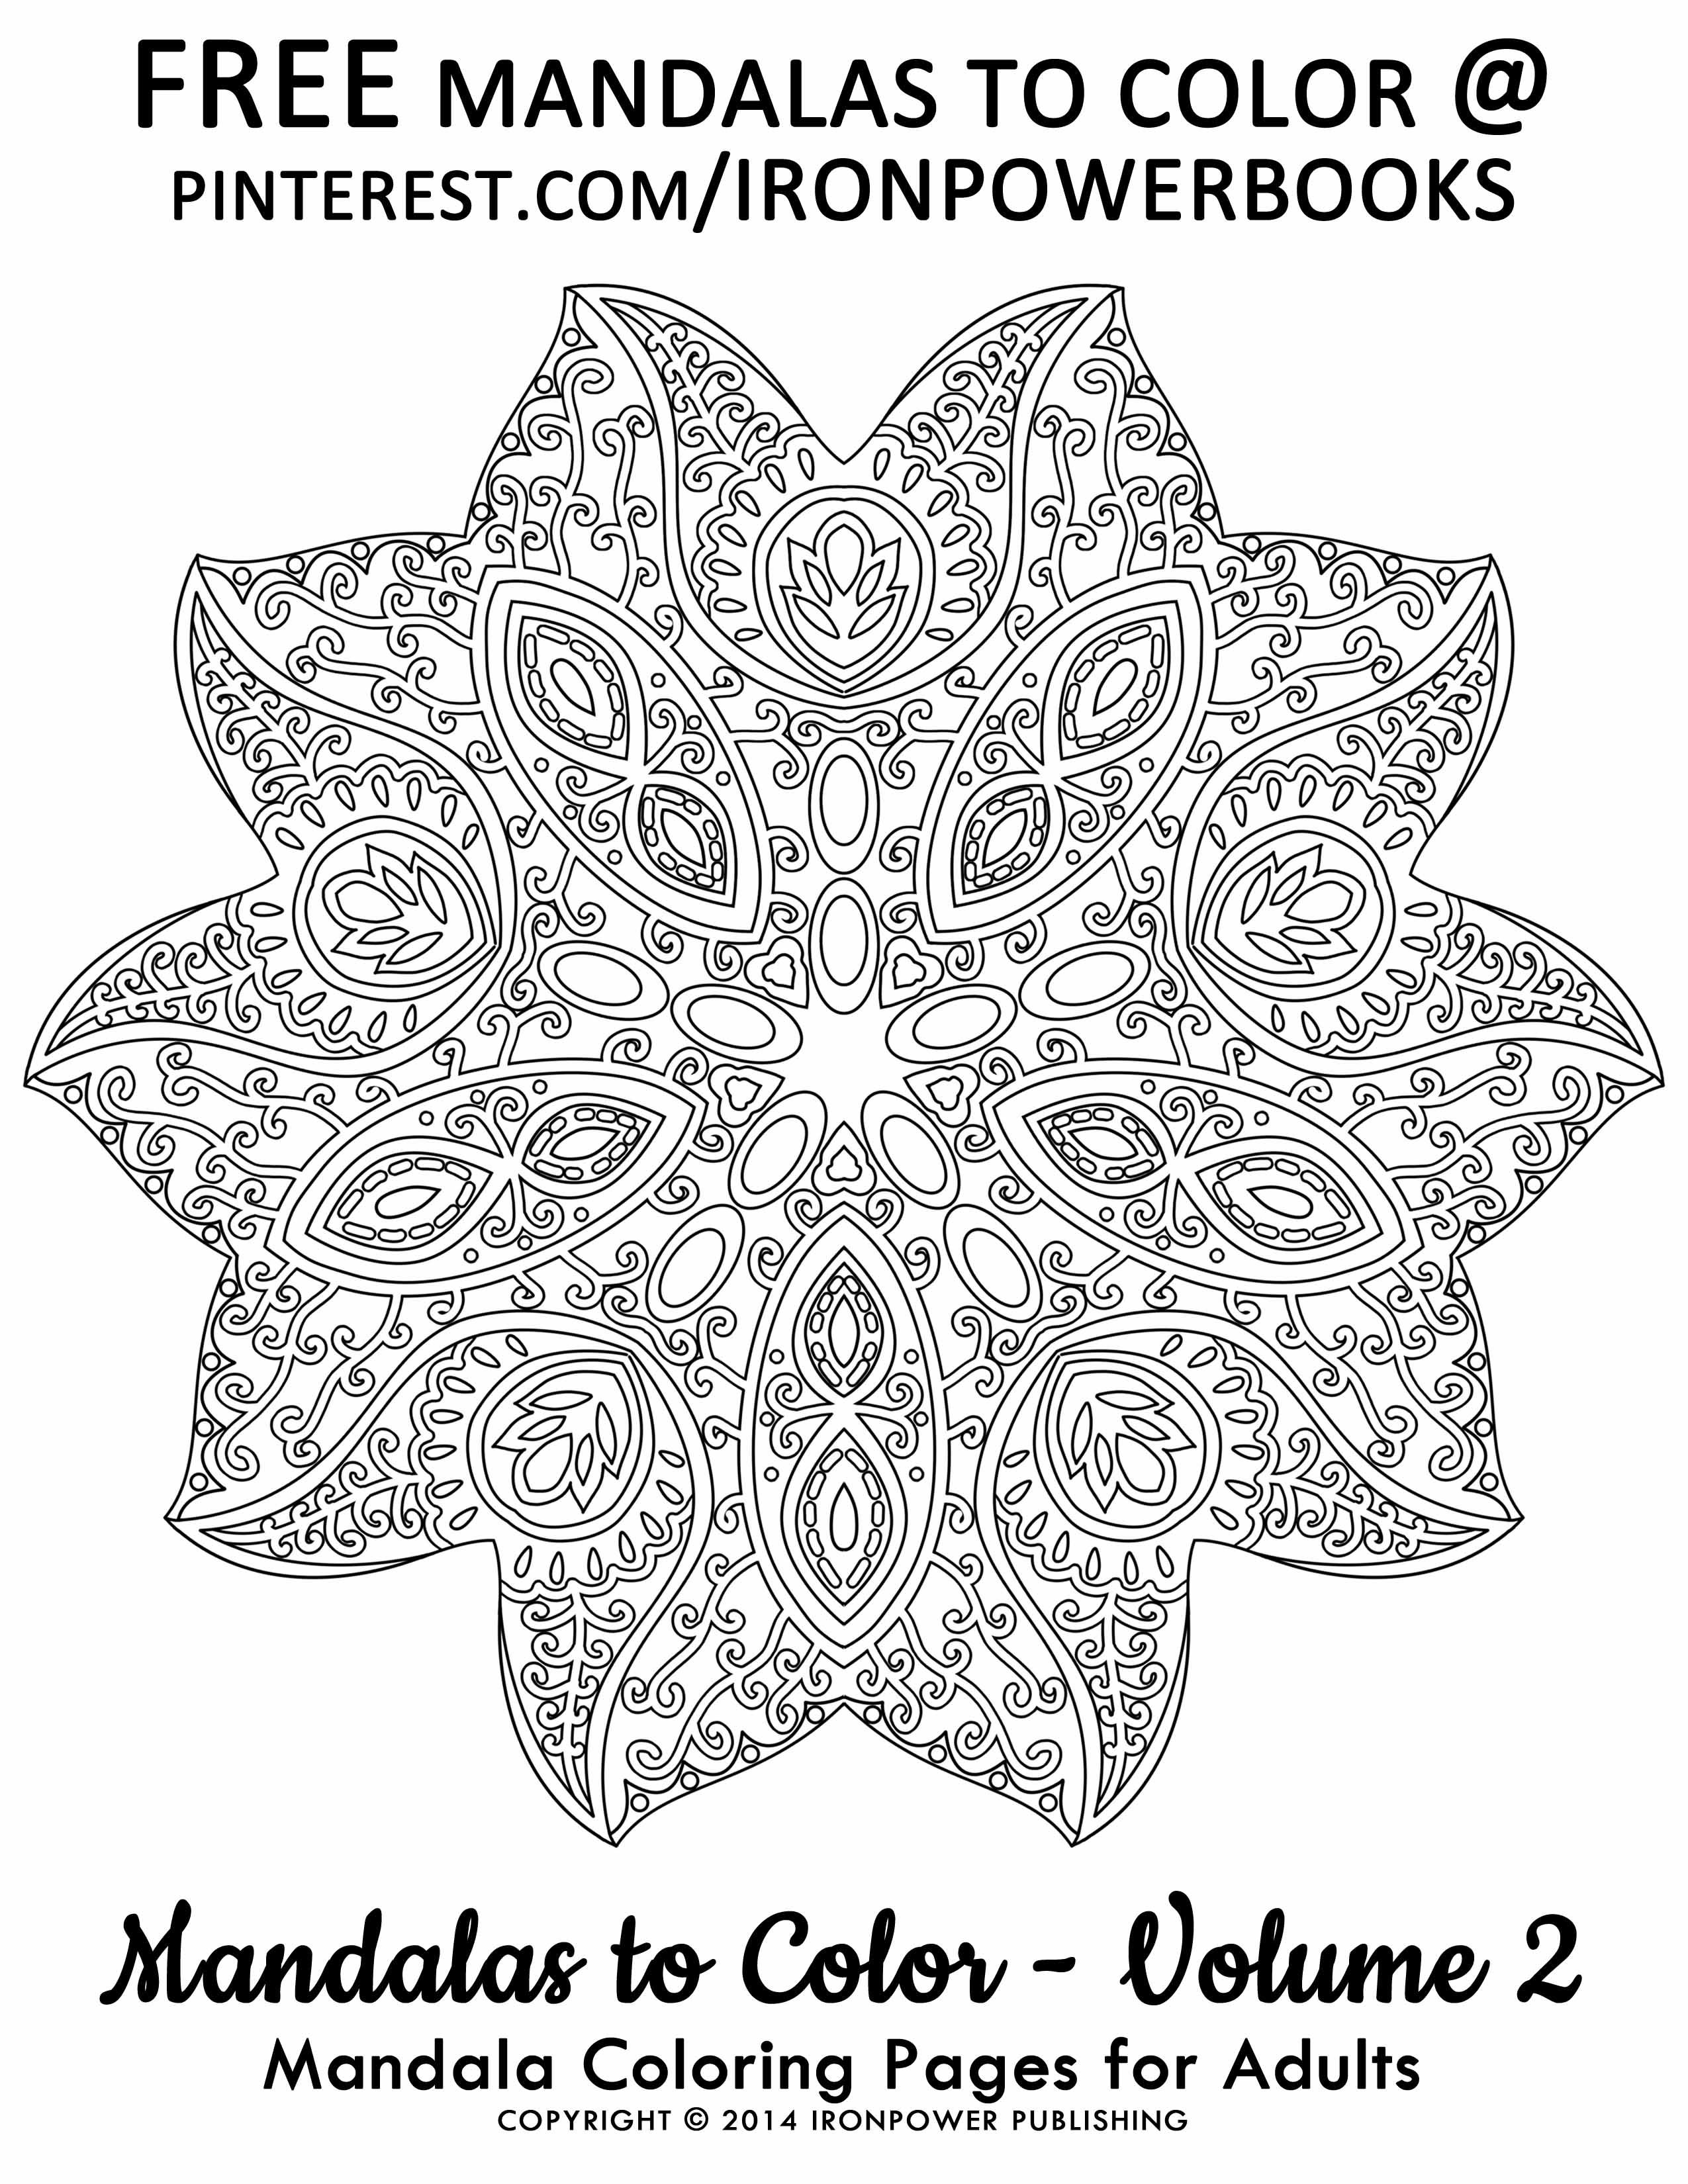 Mandala Coloring Pages for FREE ironpowerbooks Please use freely